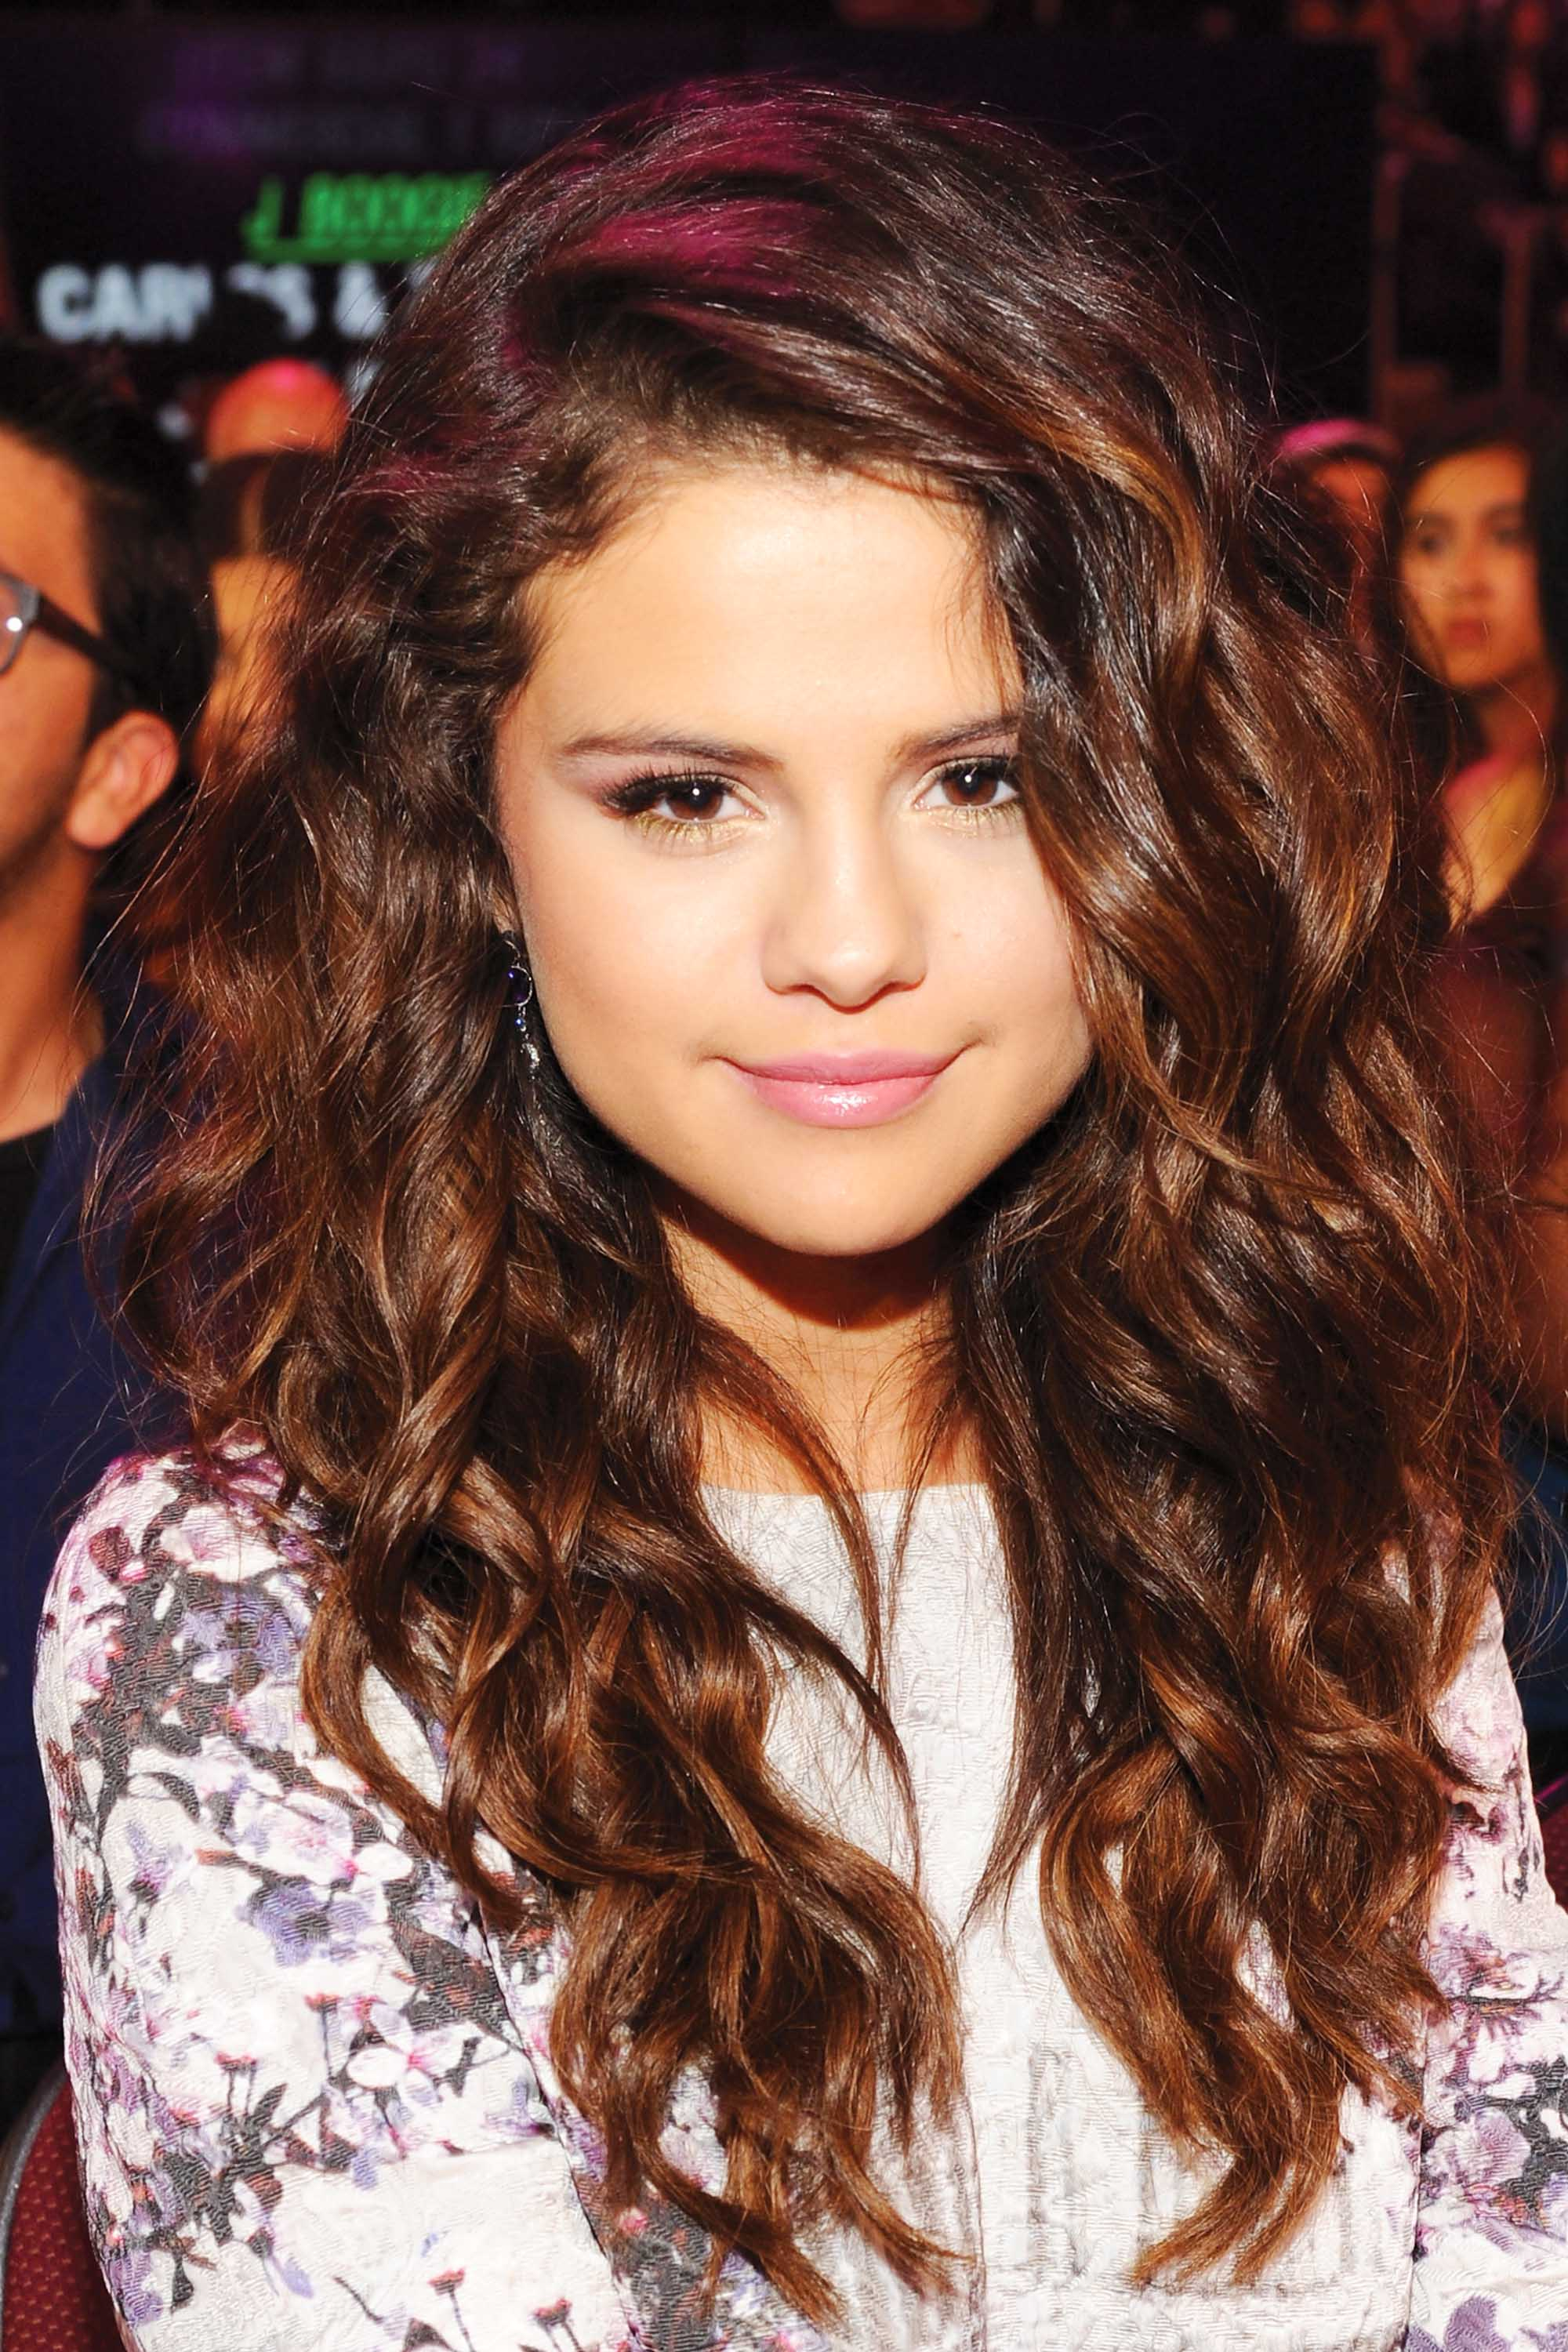 27 Best Of Selena Gomez Hairstyles Hairstyles For Women